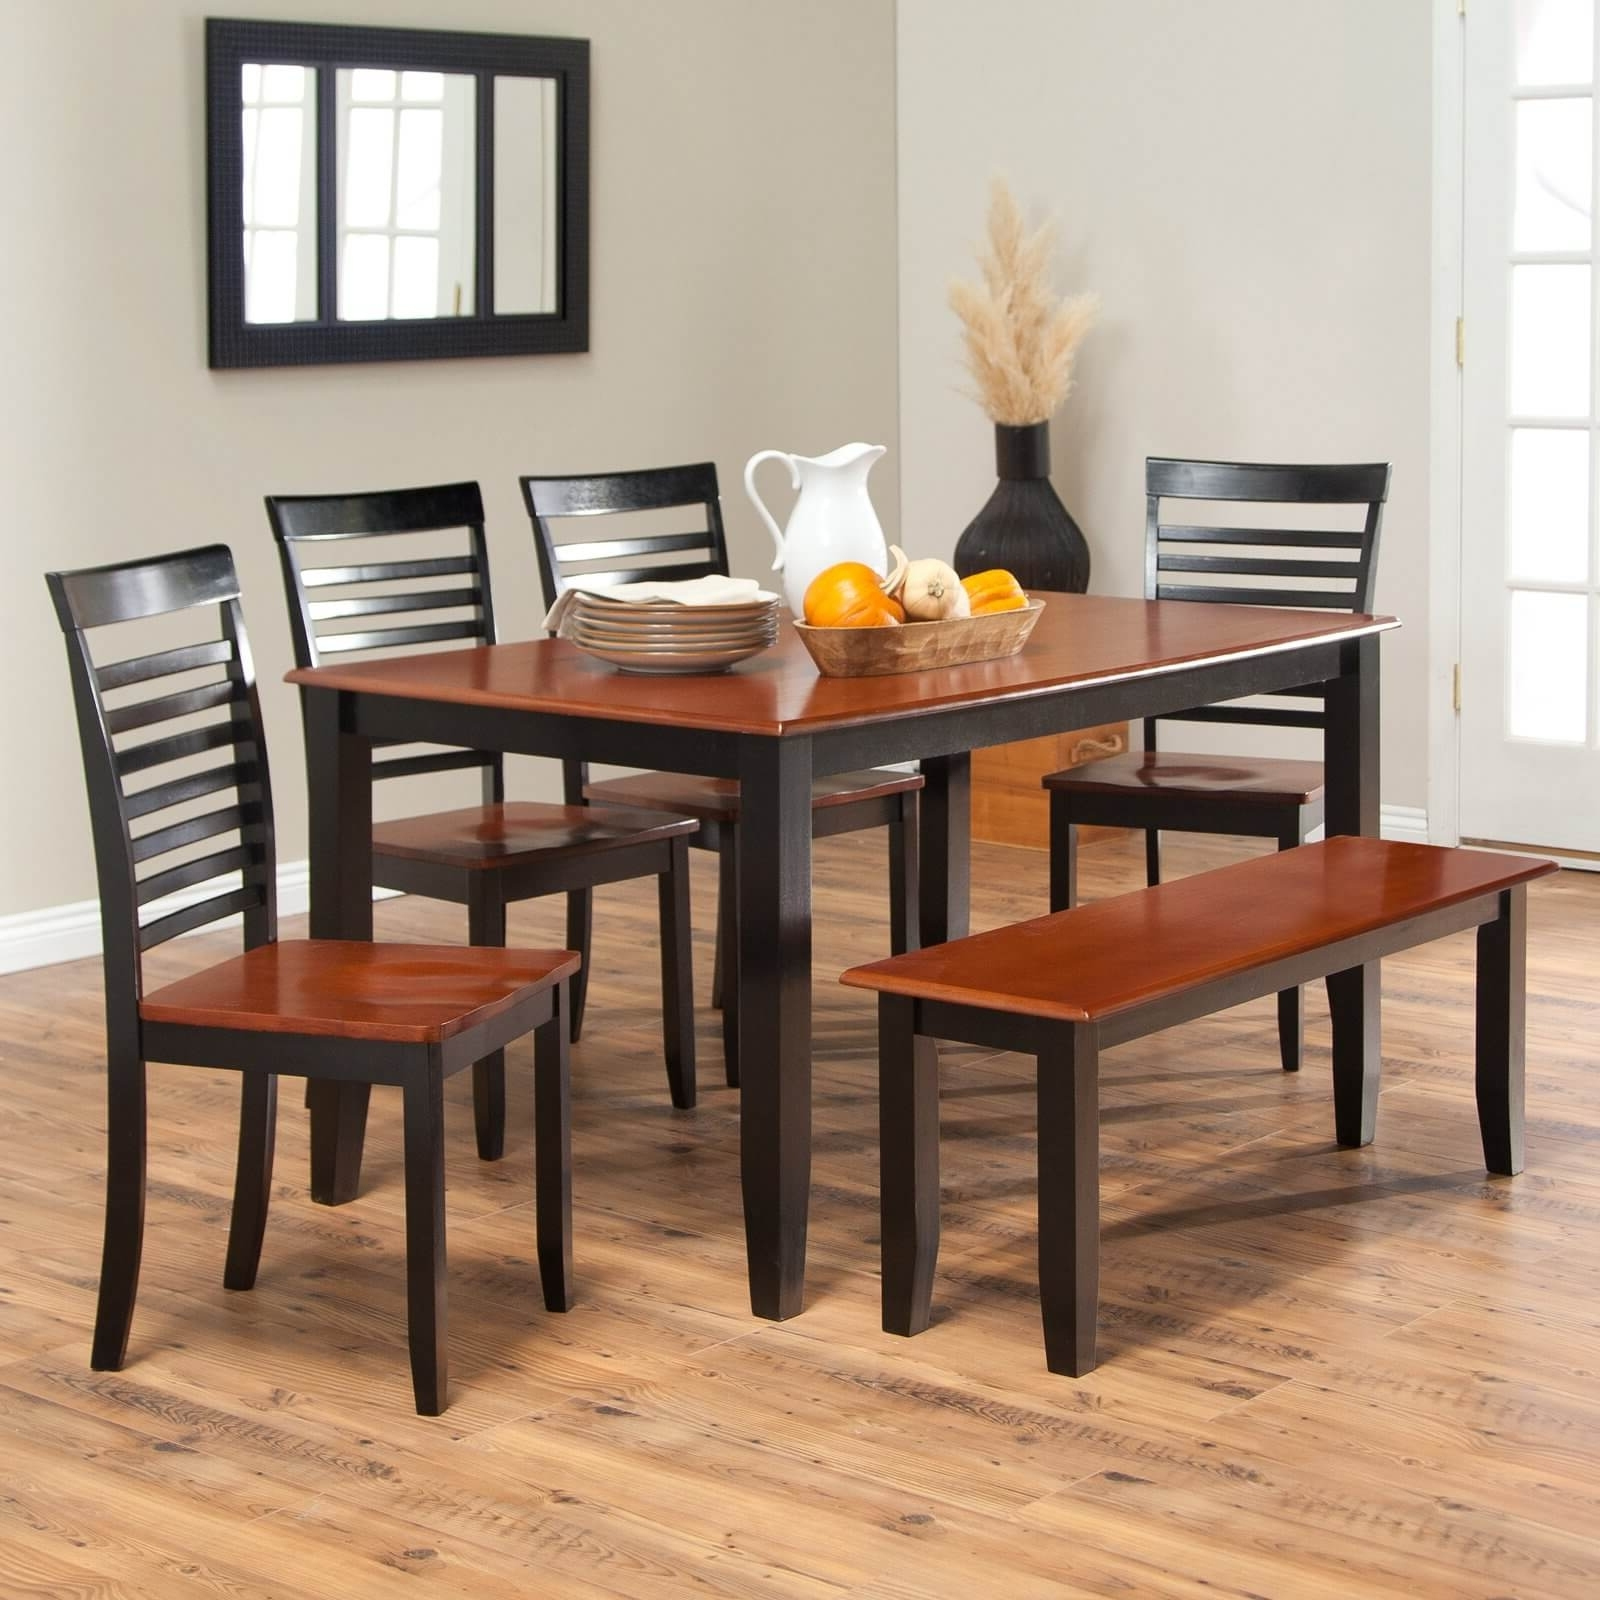 Trendy 26 Dining Room Sets (Big And Small) With Bench Seating (2018) Pertaining To Cheap Dining Room Chairs (View 22 of 25)